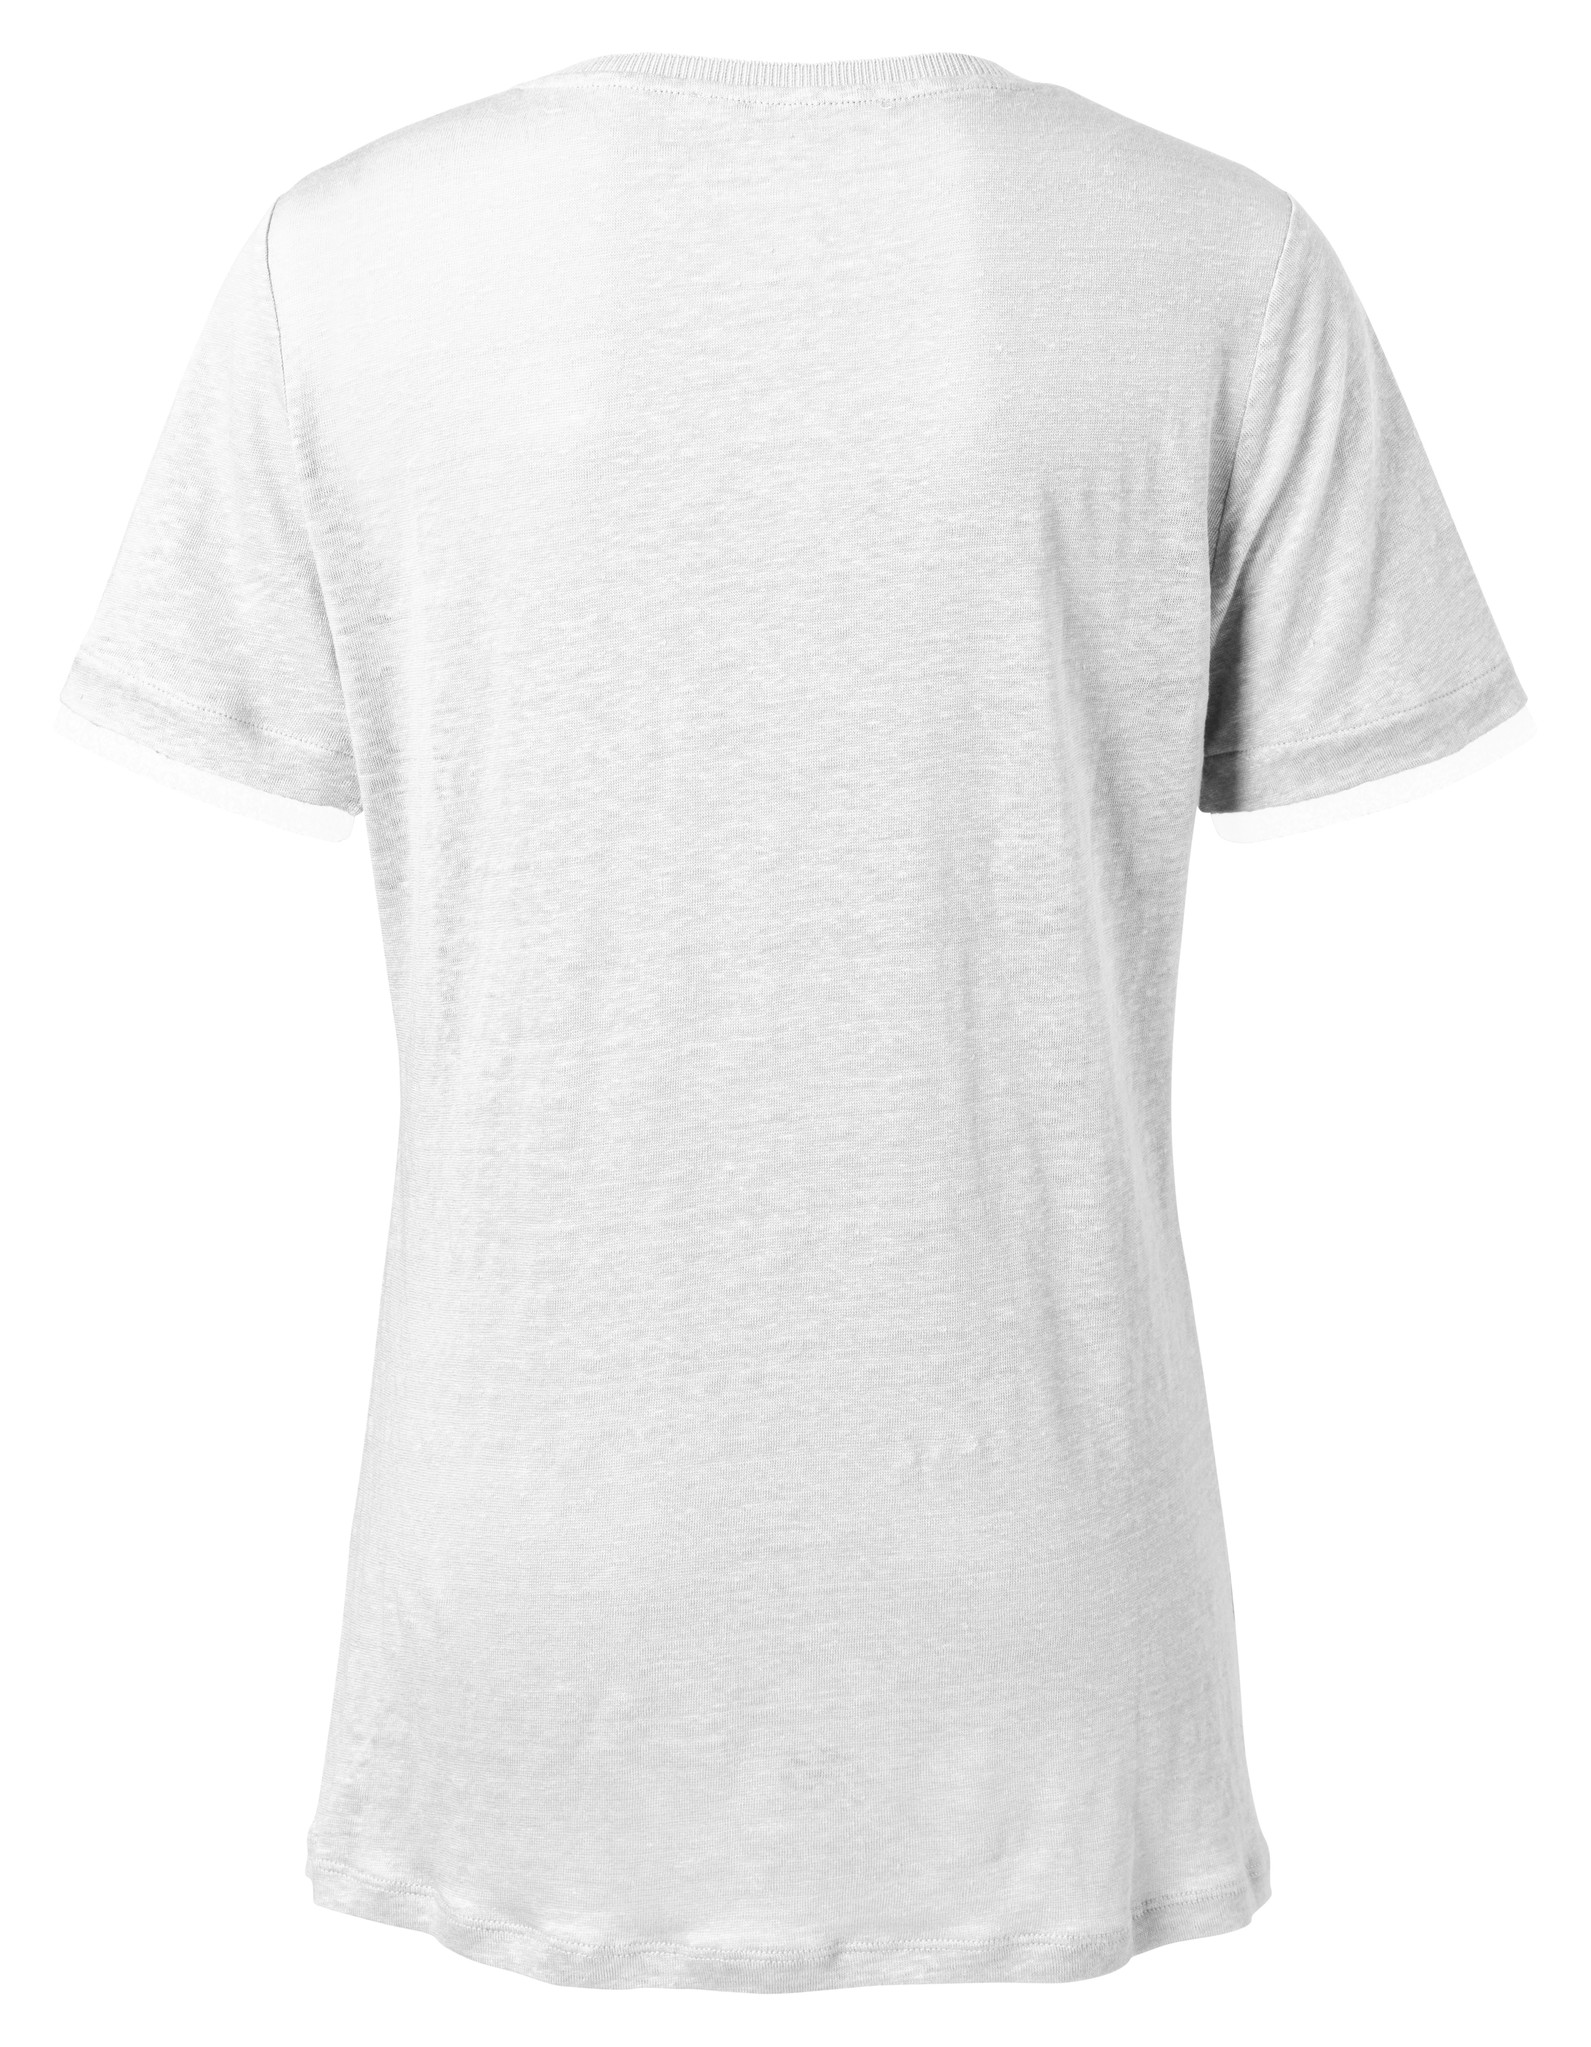 yaya V-neck tee with wove 1919168-113-3